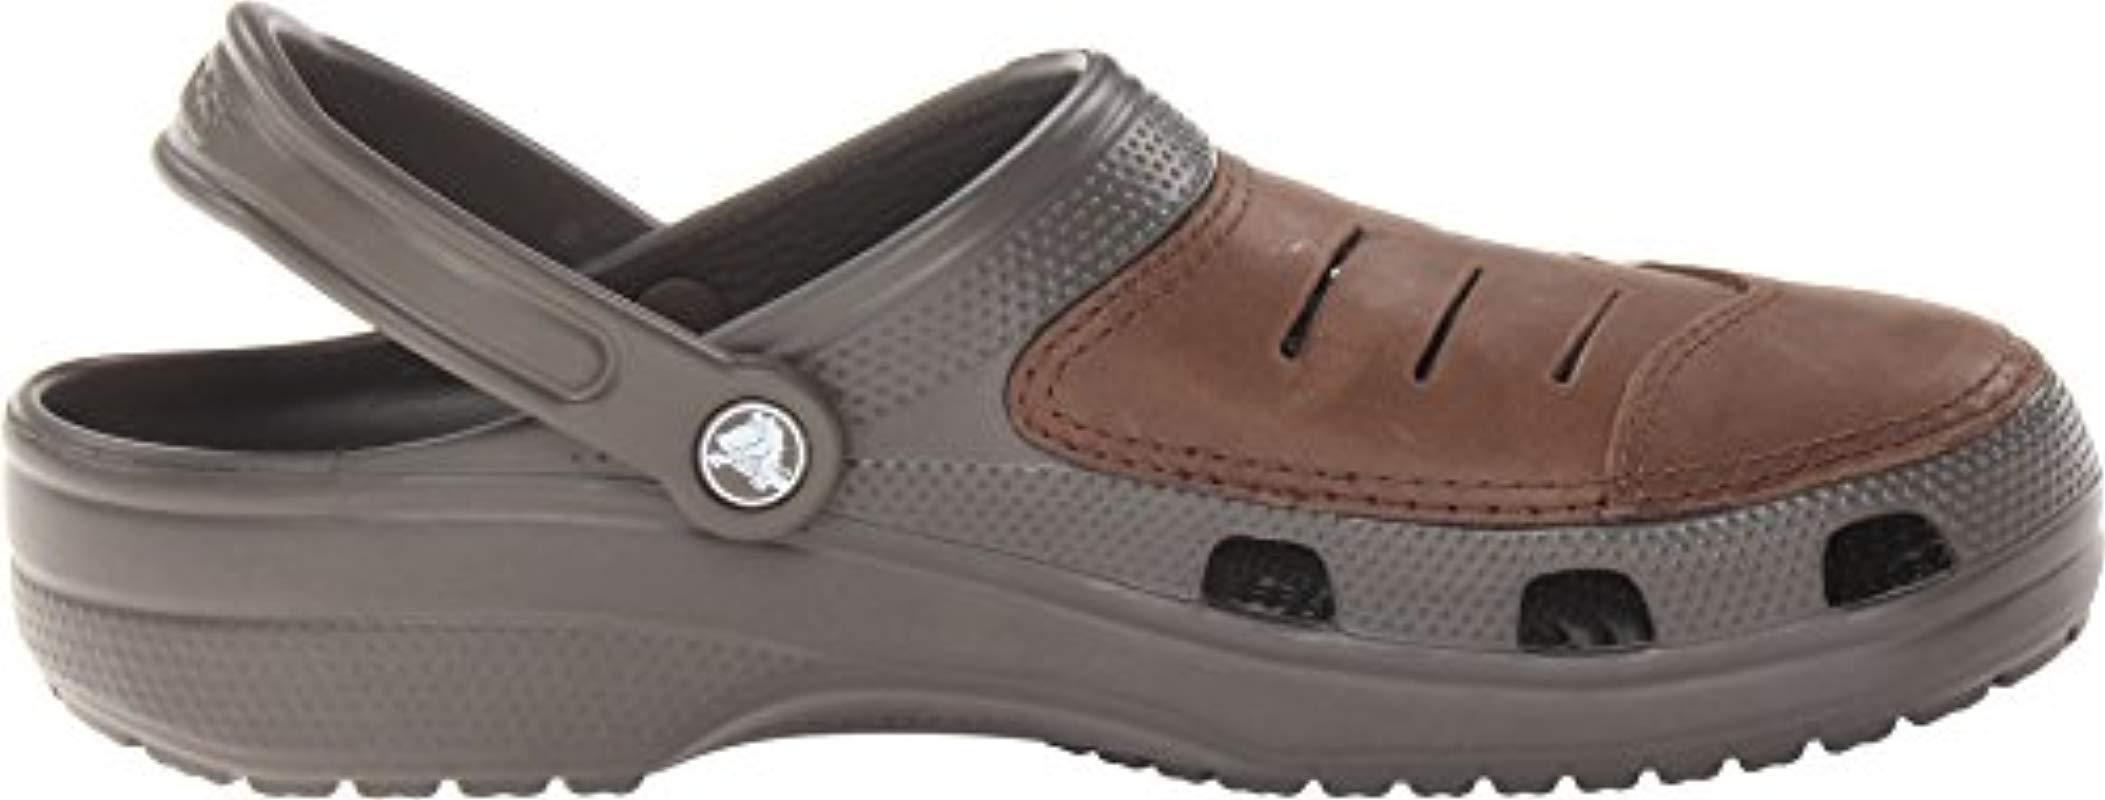 275348387805d Crocs™ - Brown Bogota Clog for Men - Lyst. View fullscreen